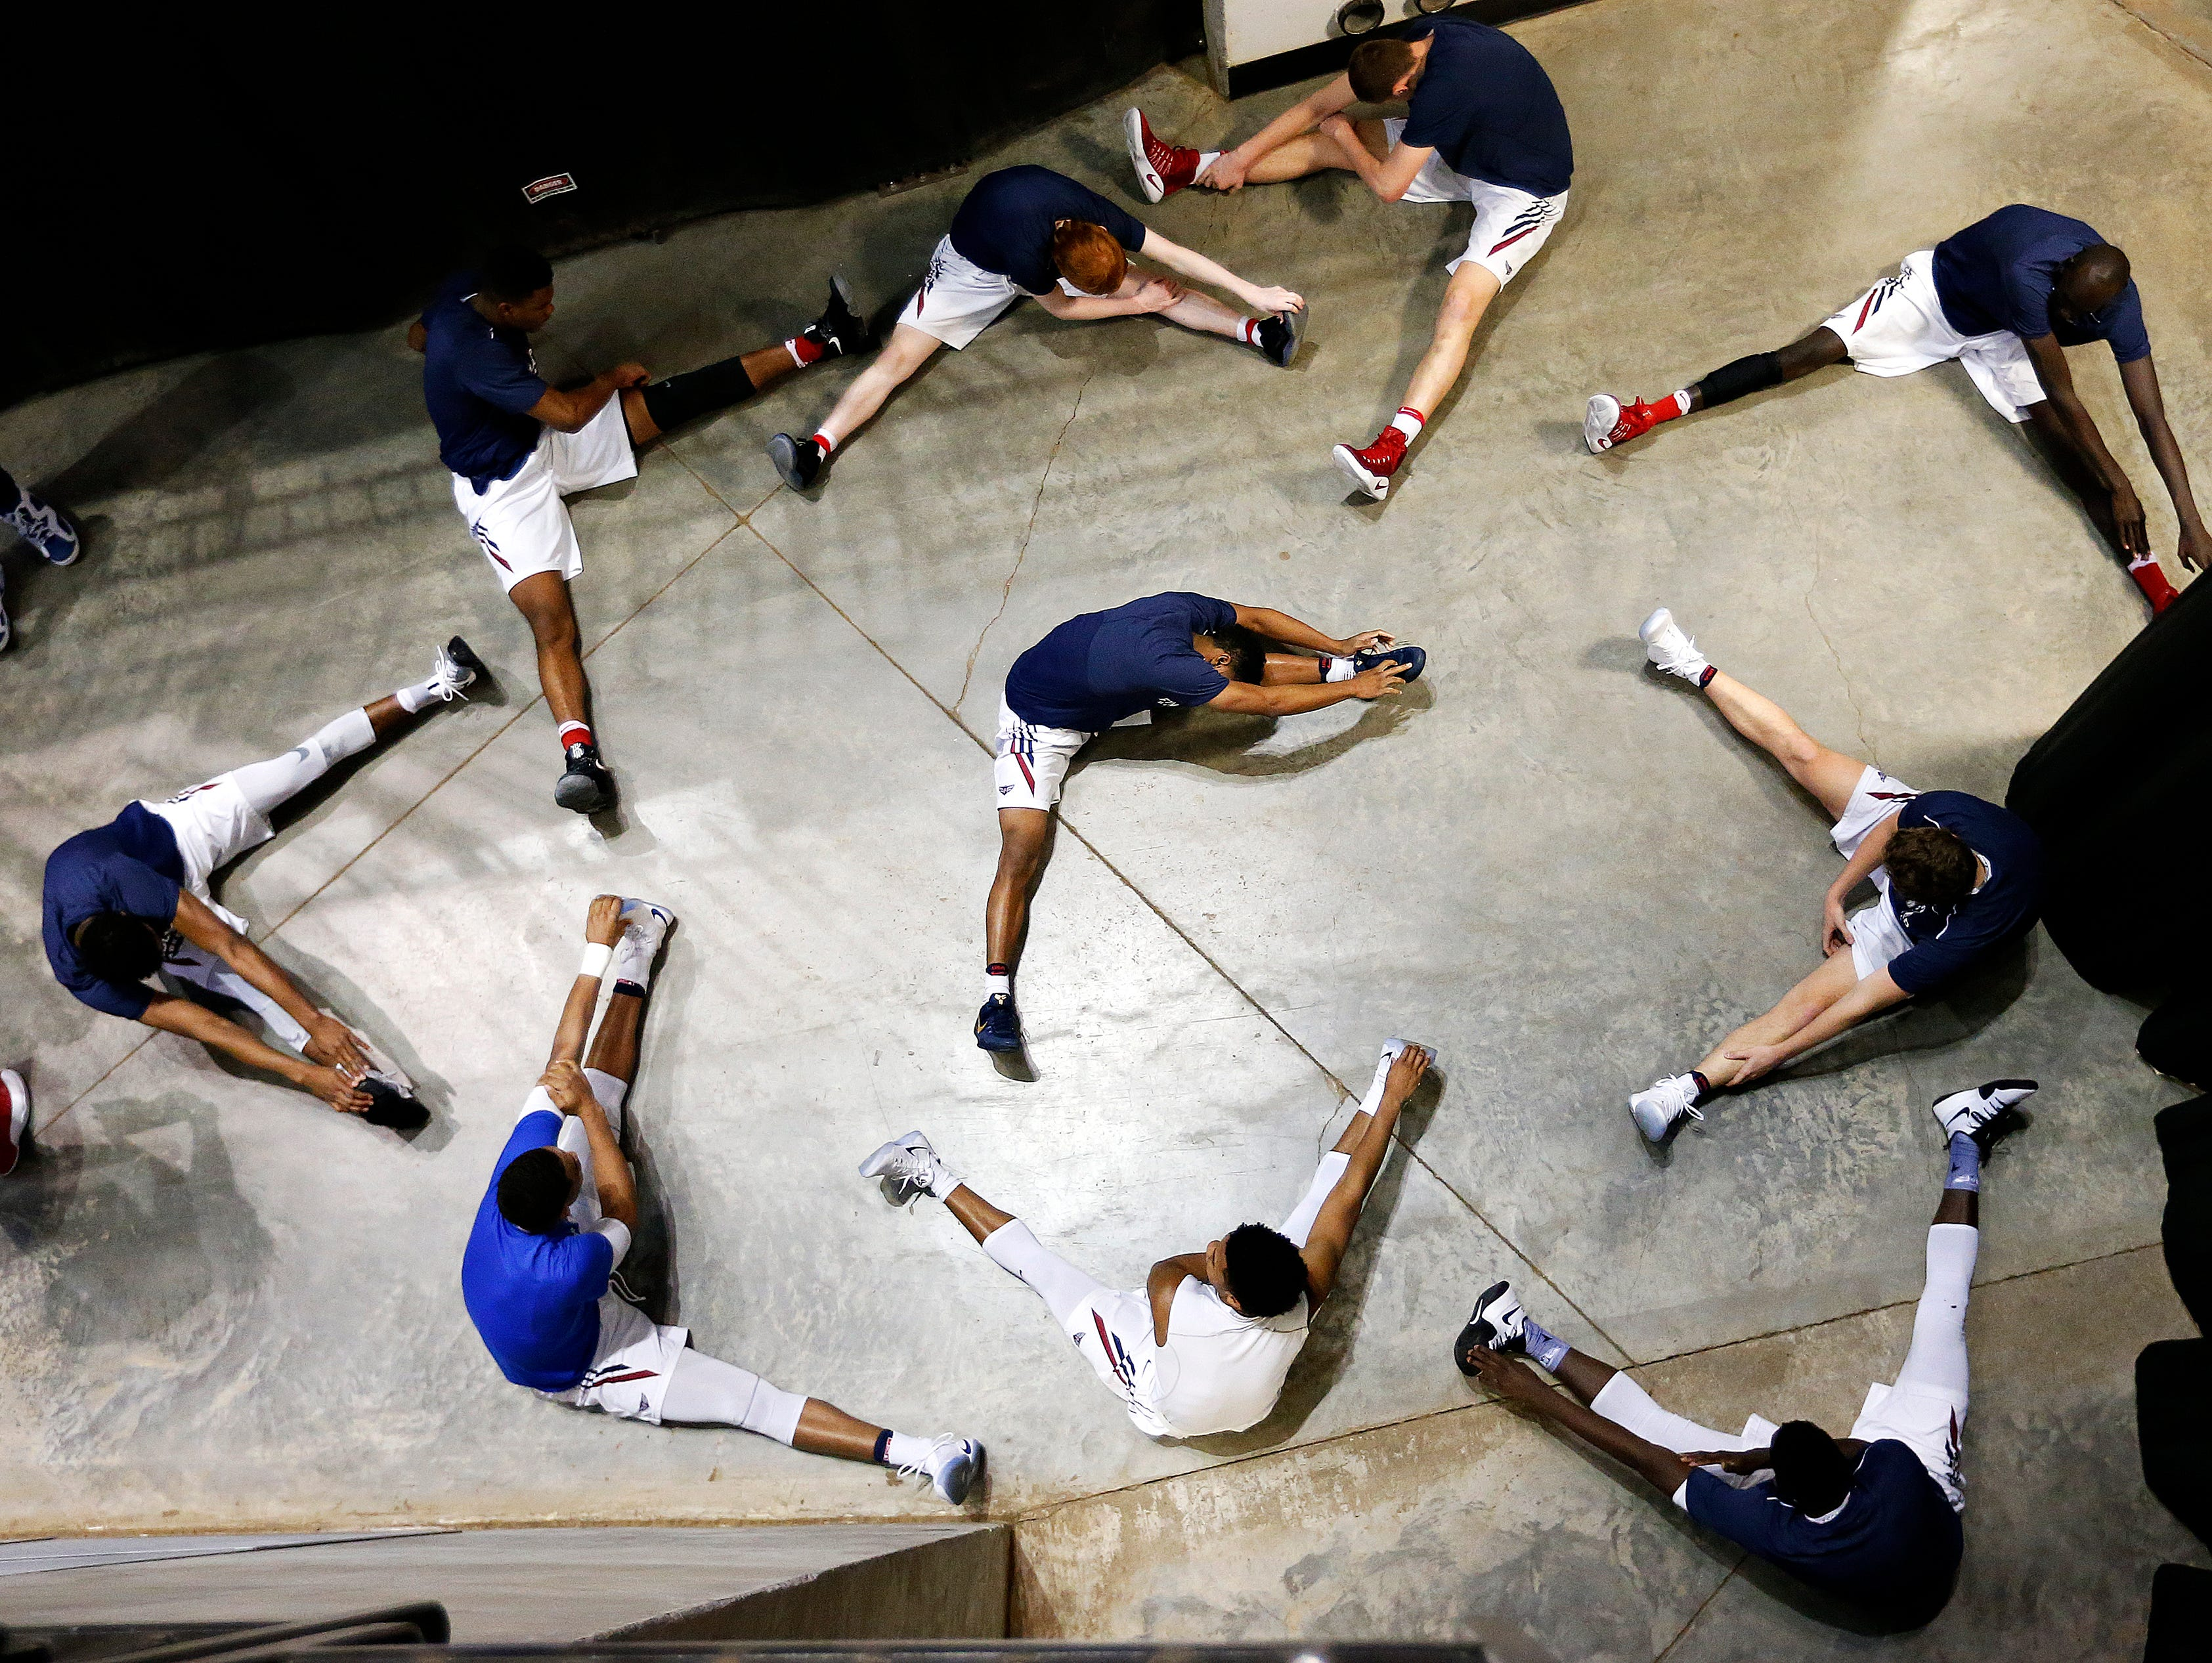 Findlay Prep Pilots (Las Vegas, Nev.) players warm up prior to the start of the 2017 Bass Pro Tournament of Champions high school basketball game between the Findlay Prep Pilots (Las Vegas, Nev.) and the Madison Prep Academy Chargers (Baton Rouge, La.) at JQH Arena in Springfield, Mo. on Jan. 12, 2017. The Findlay Prep Pilots won the game 77-50.